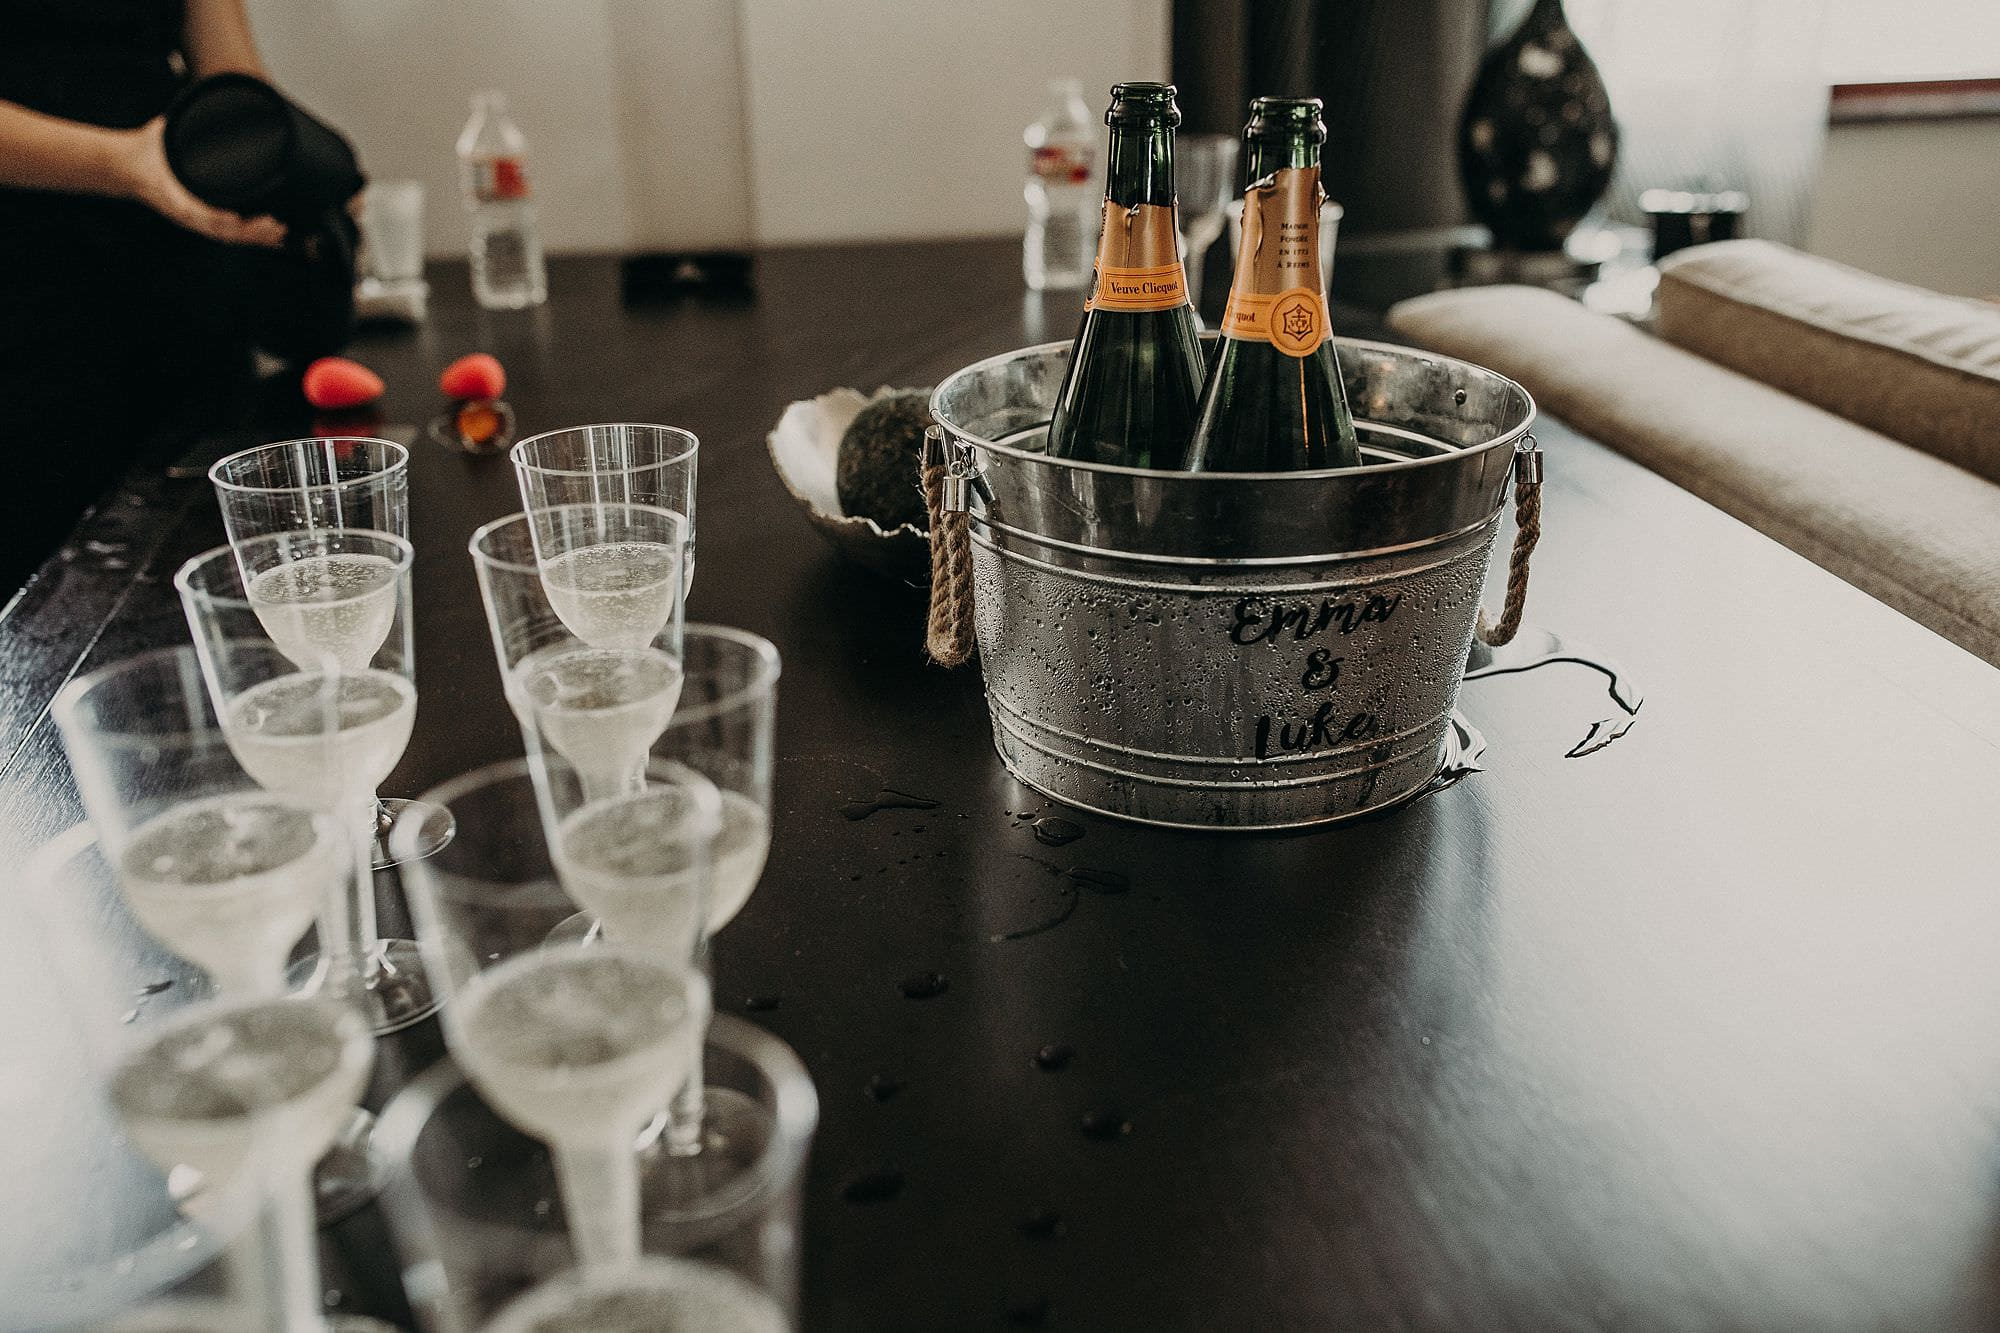 champaign on wedding day